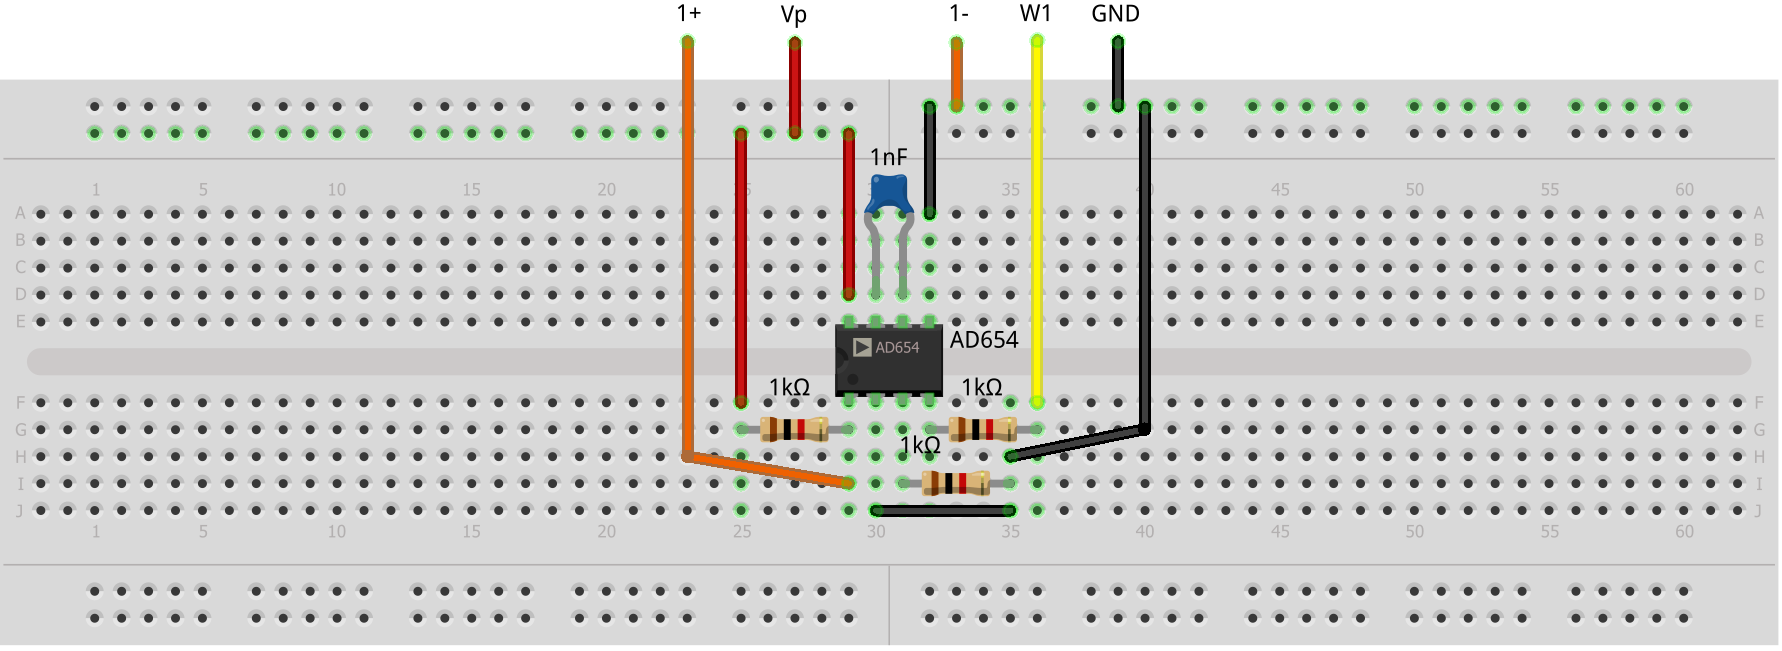 Activity Analog To Digital Conversion Devices Wiki Opamp Comparator Voltage Divider Tutorial With Theory Lab Hardware Setup